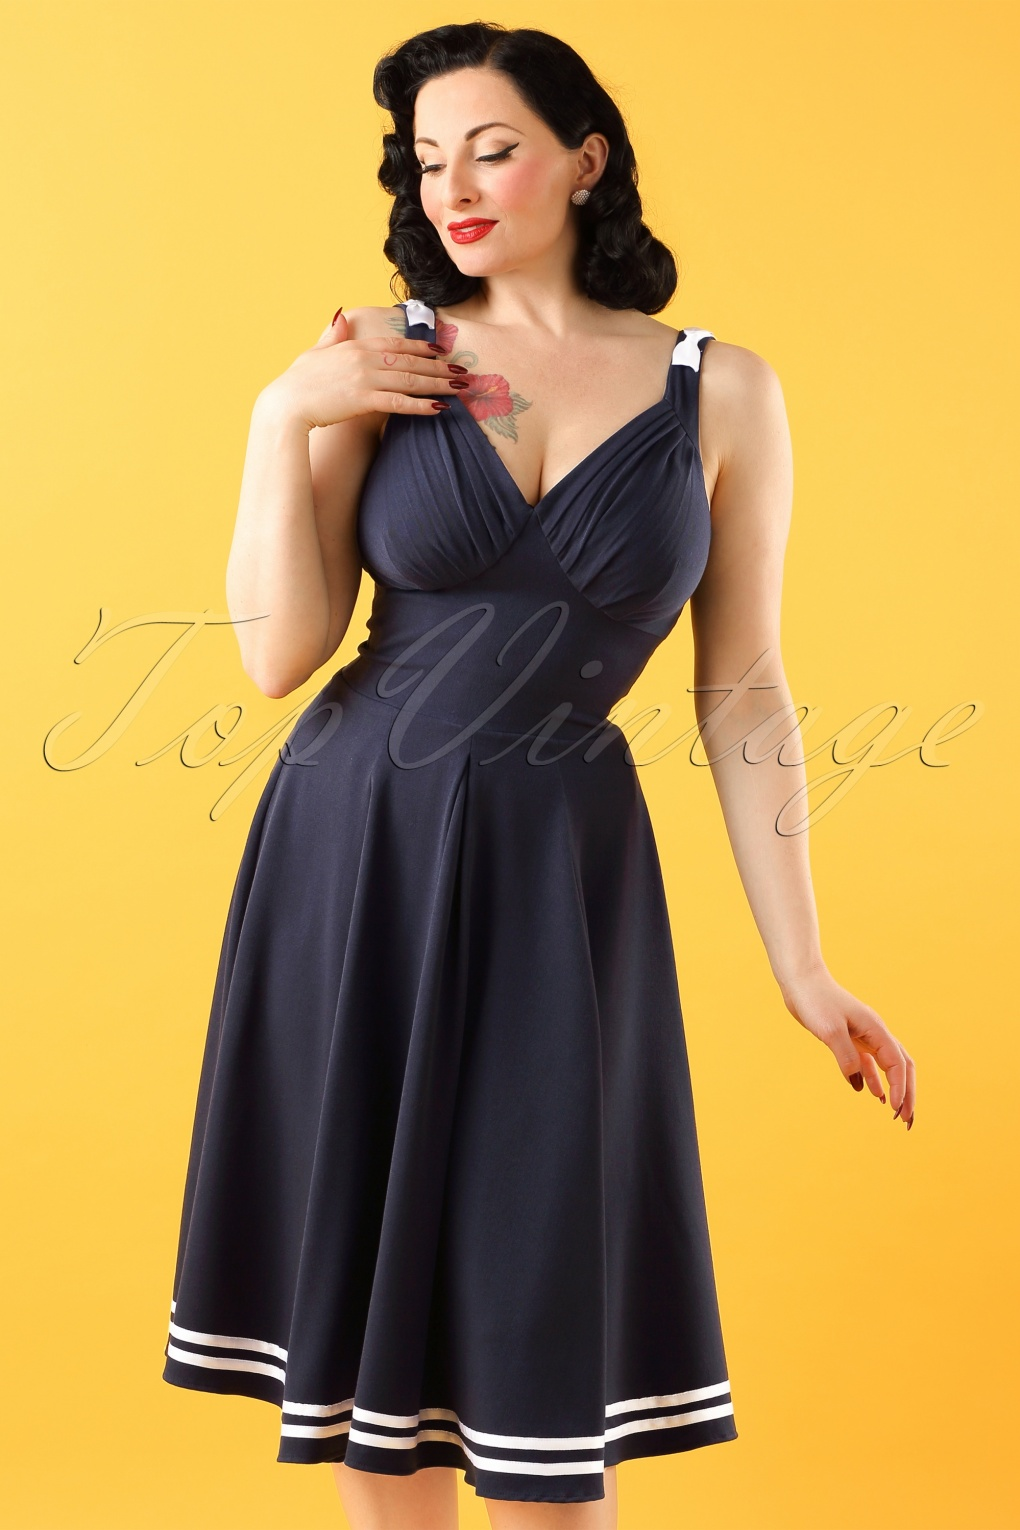 50s Dresses, Pinup Dresses, Swing Dresses 50s Carol May Sailor Dress in Navy £80.64 AT vintagedancer.com